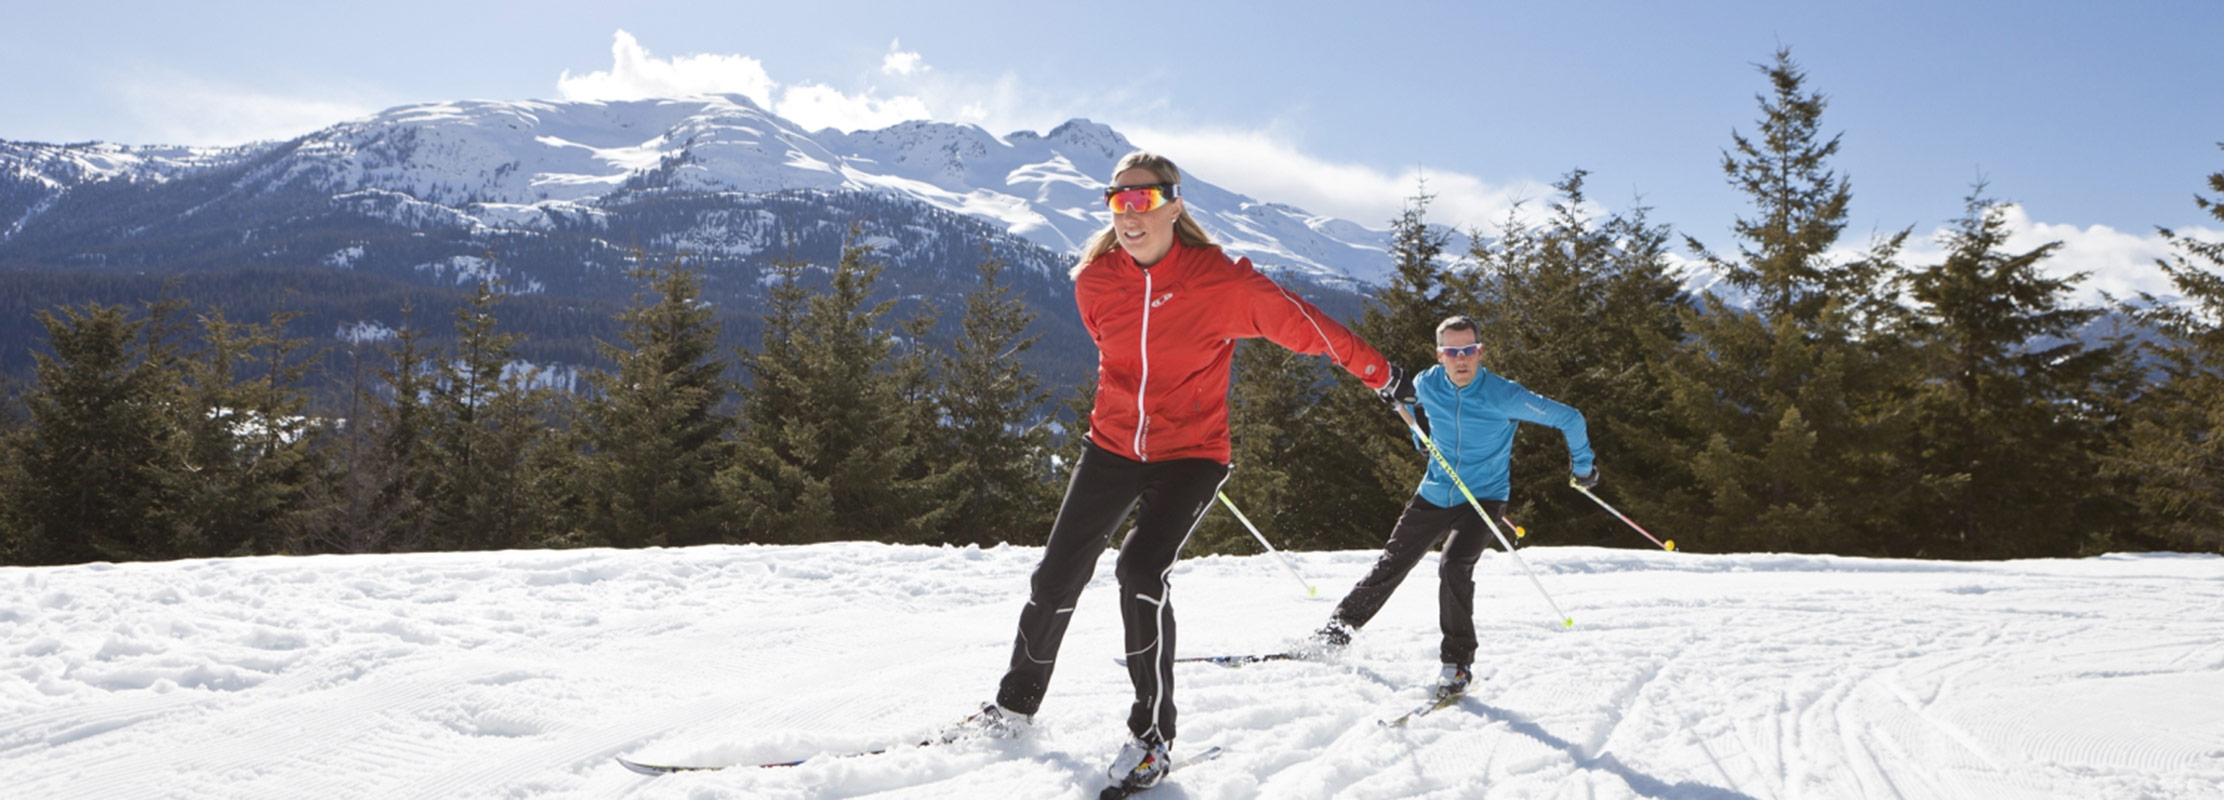 Nordic Skiing Callaghan Valley Whistler BC